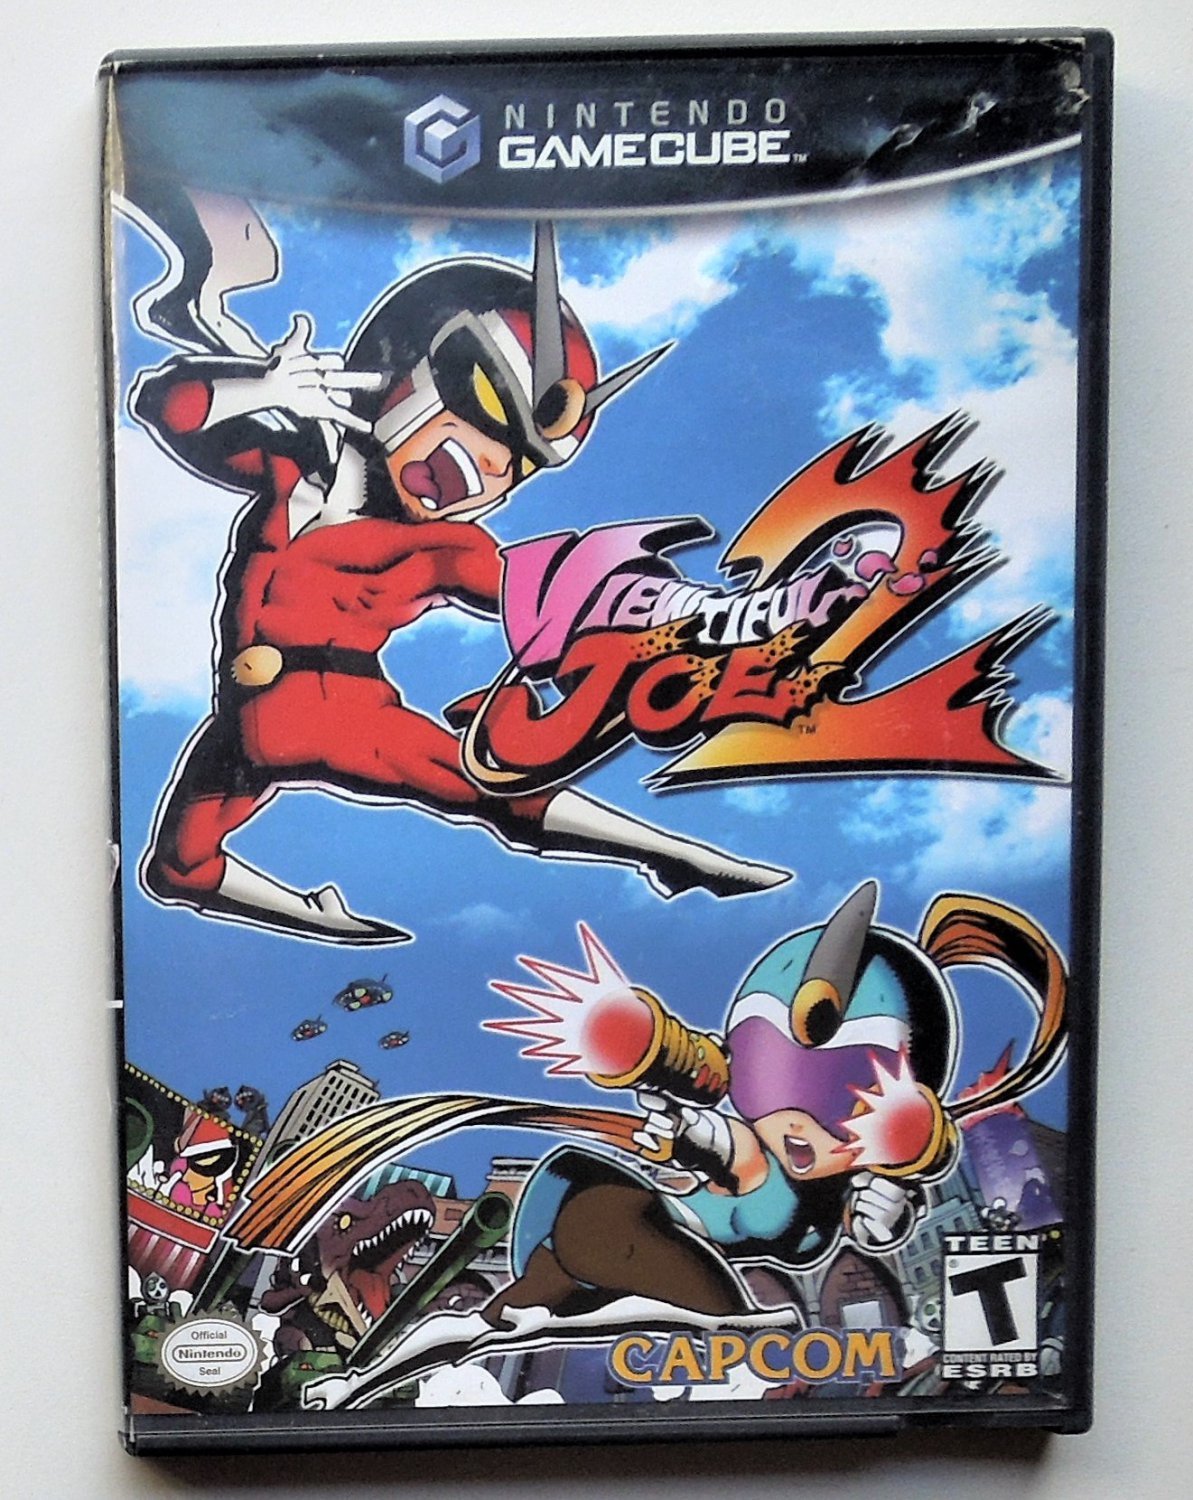 2004 Capcom Viewful Joe 2 For the Gamecube Game systems